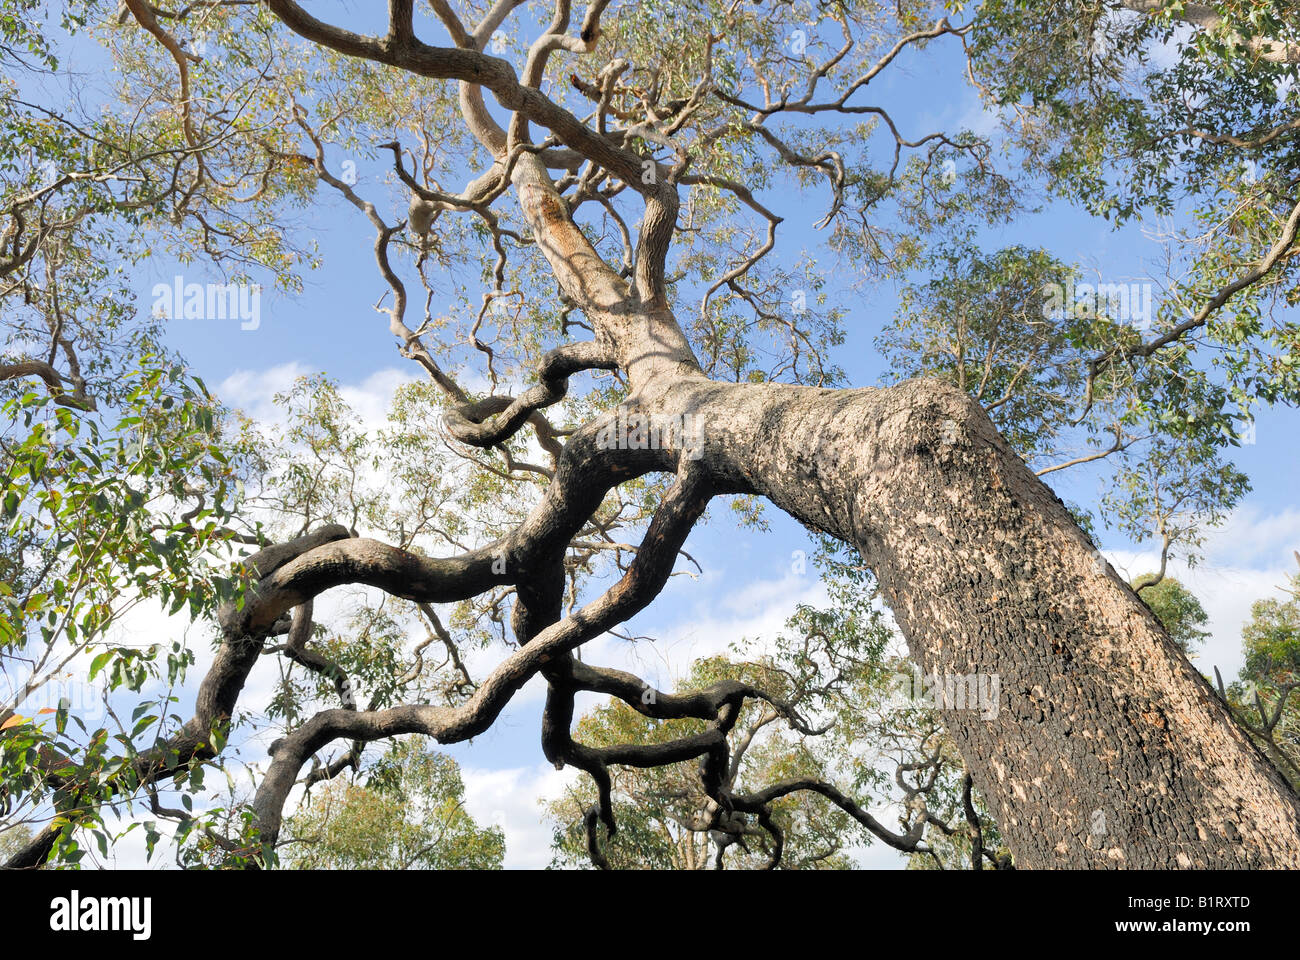 View of the crown or treetop of a River Red Gum (Eucalyptus camaldulensis), Busselton, Western Australia, Australia - Stock Image